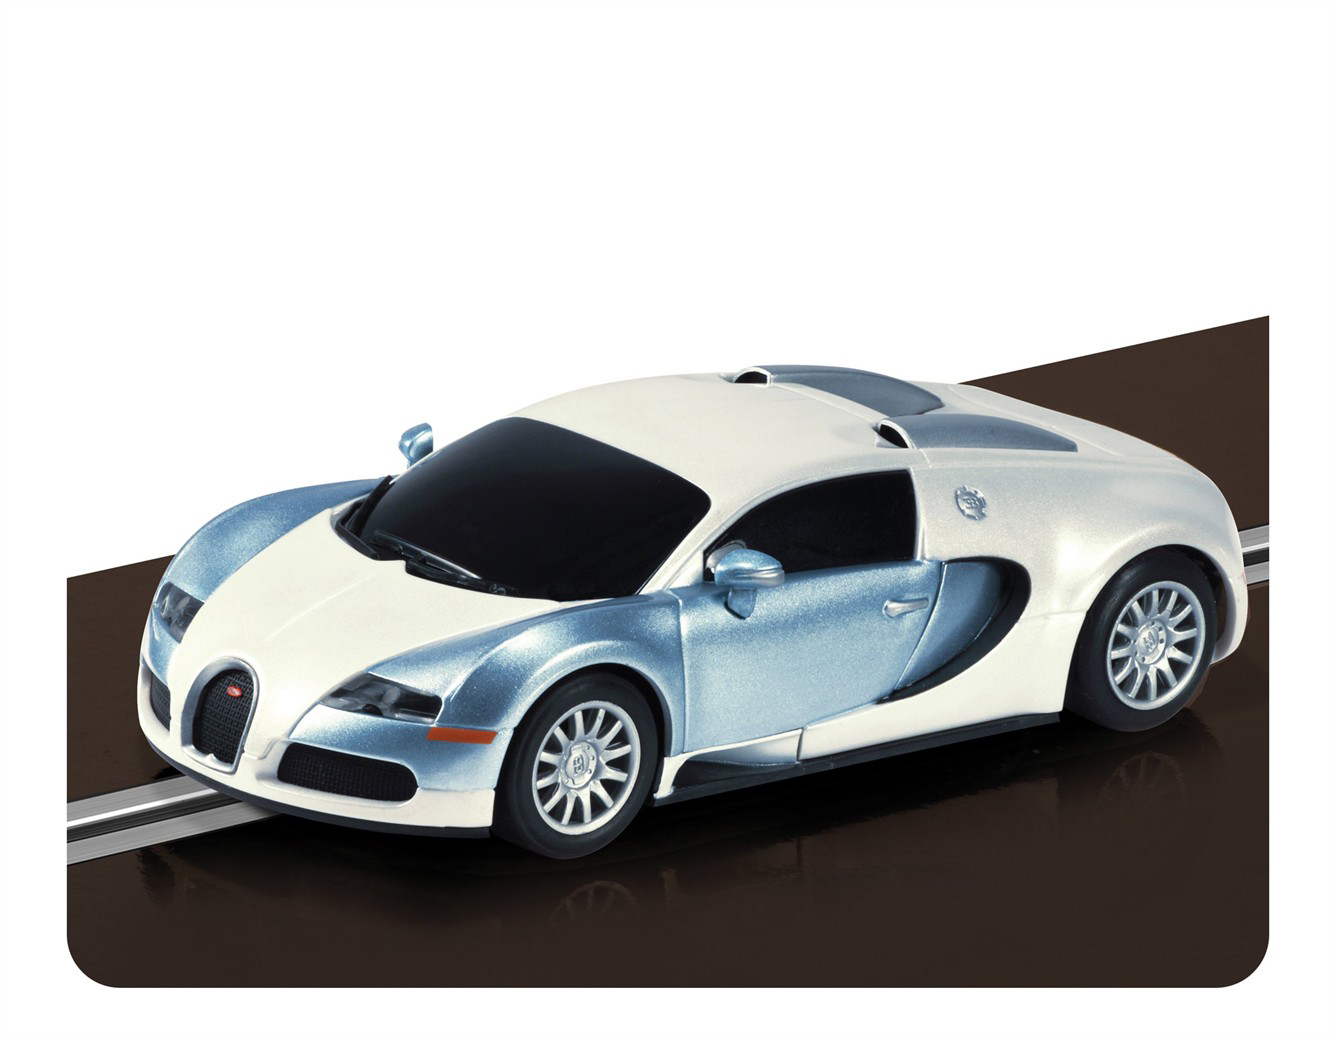 voiture slot bugatti veyron scalextric. Black Bedroom Furniture Sets. Home Design Ideas